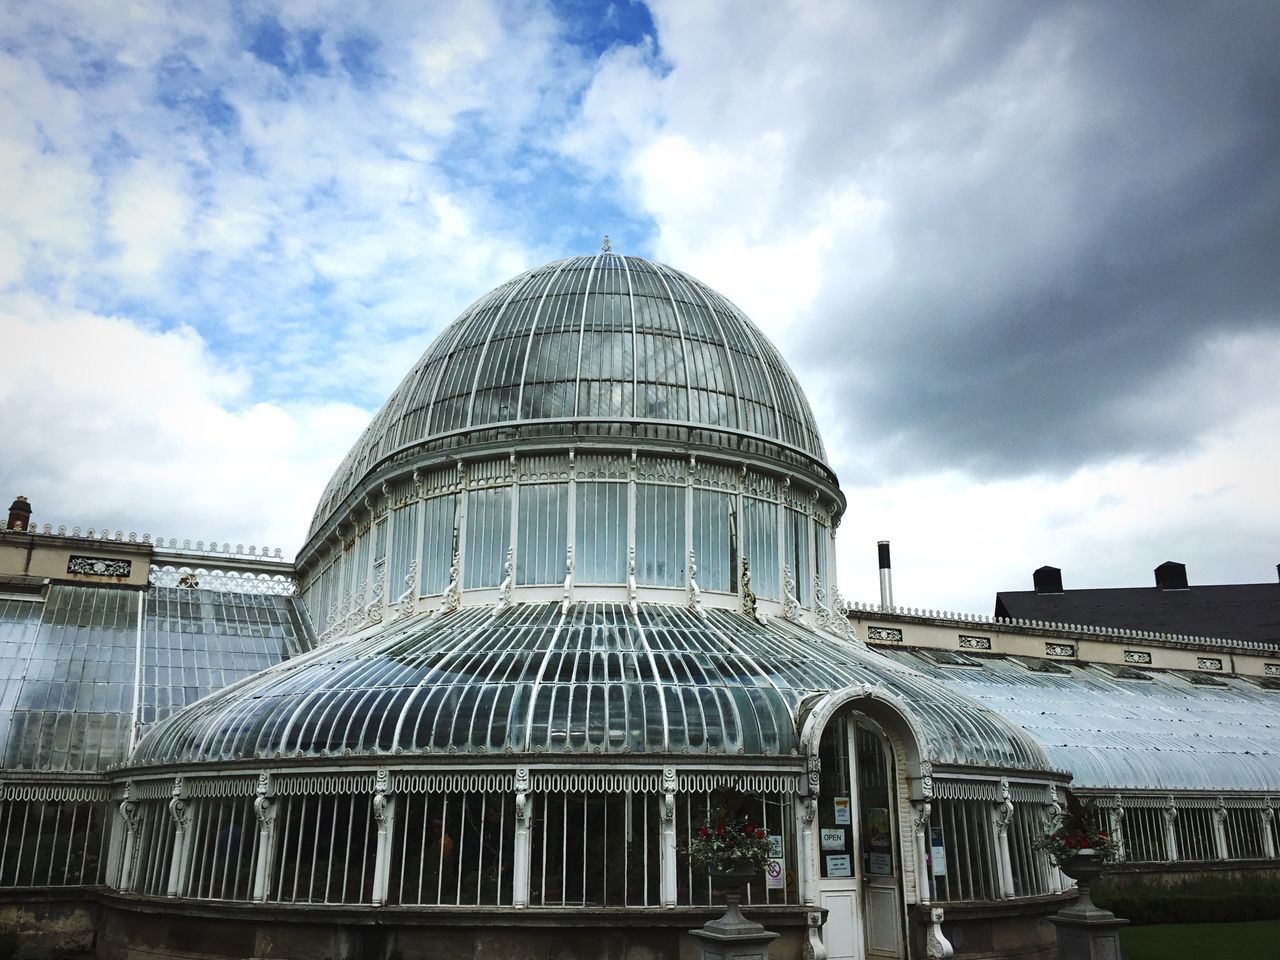 Botanischer Garten. Belfast Northern Ireland Botanical Gardens Historical Building Architecture Palm Trees Cloud - Sky History Building Exterior Plants Glass Built Structure Cloudy